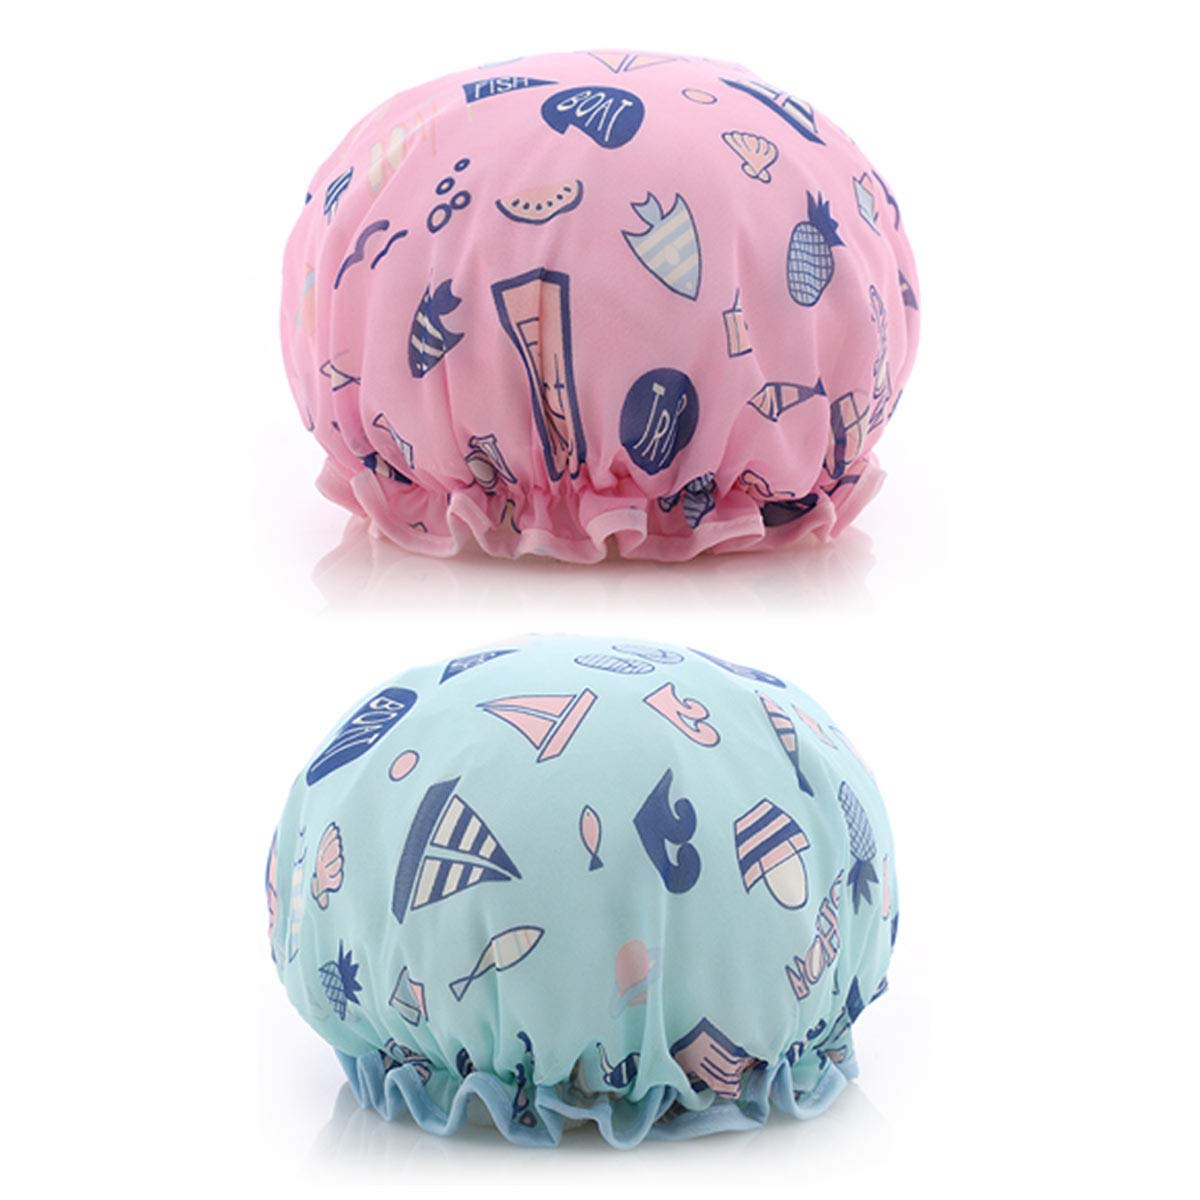 2 Pack Ocean Shower Cap Double Layers Bath Caps for Women Reusable Spa Waterproof Designed Satin Lined (Pink and Blue)